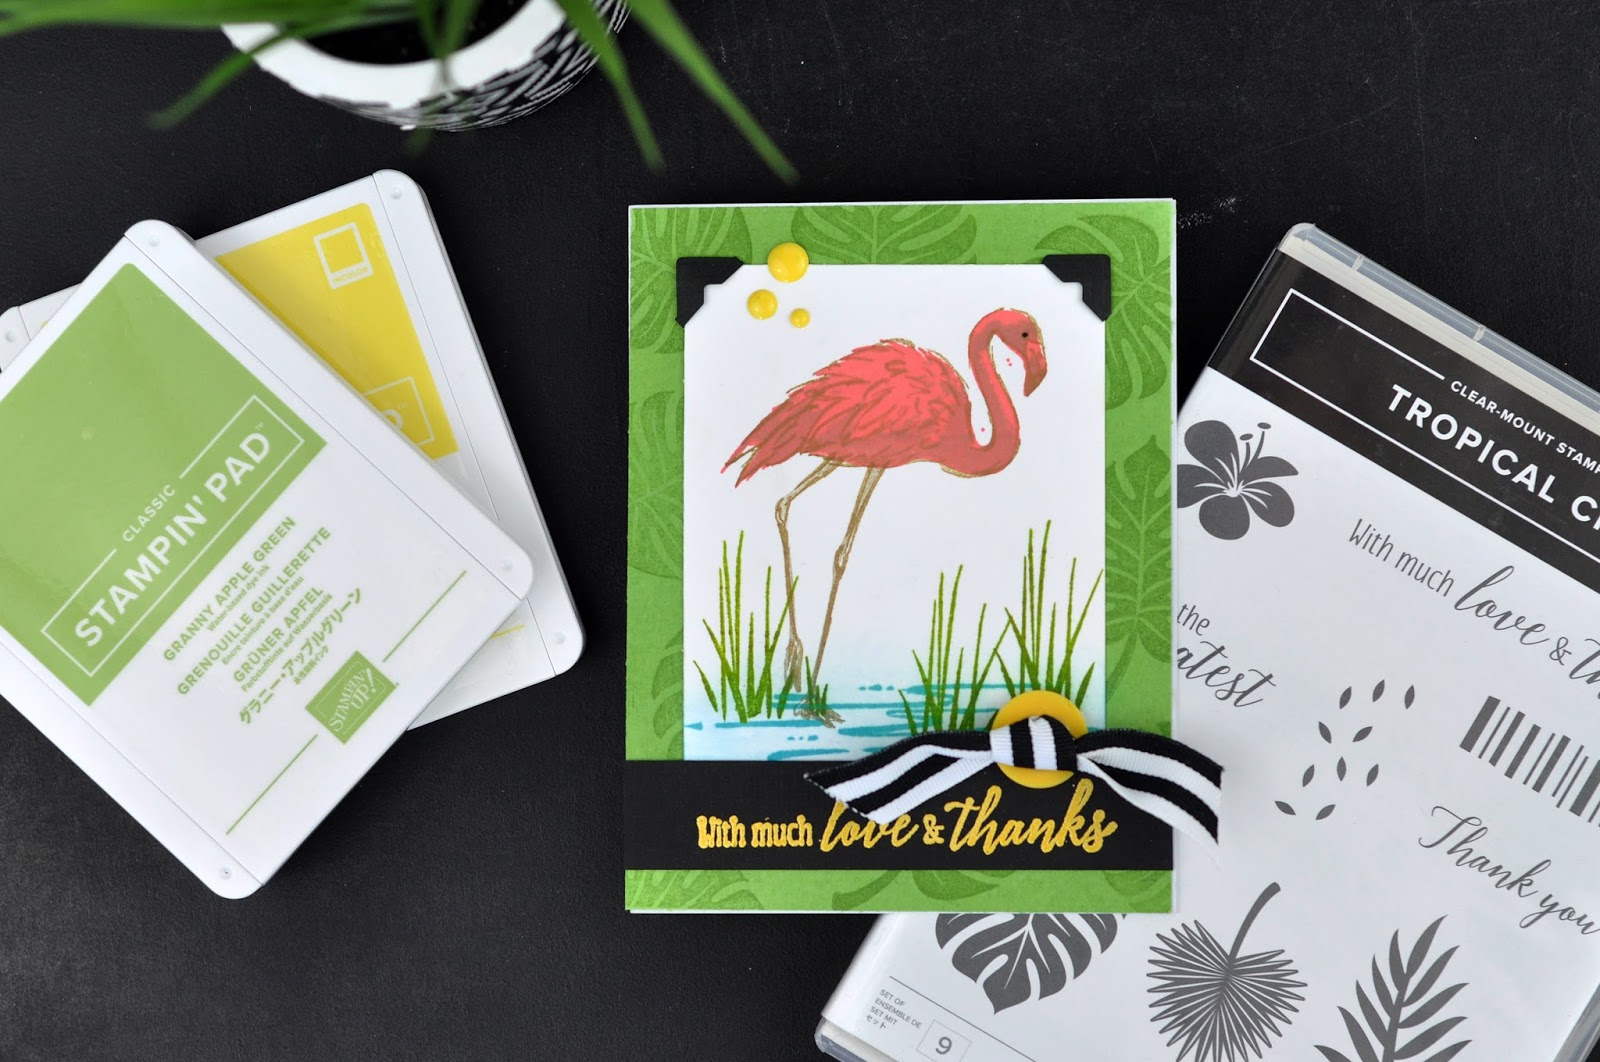 Stampin' Up! Flamingo Thank You Card. Stamped card featuring Stampin' Up! inks and stamps. Jen Gallacher uses a Stampin' Up! set to create a beautiful flamingo card. #stamping #cardmaker #stampinup #jengallacher #sctmagazine